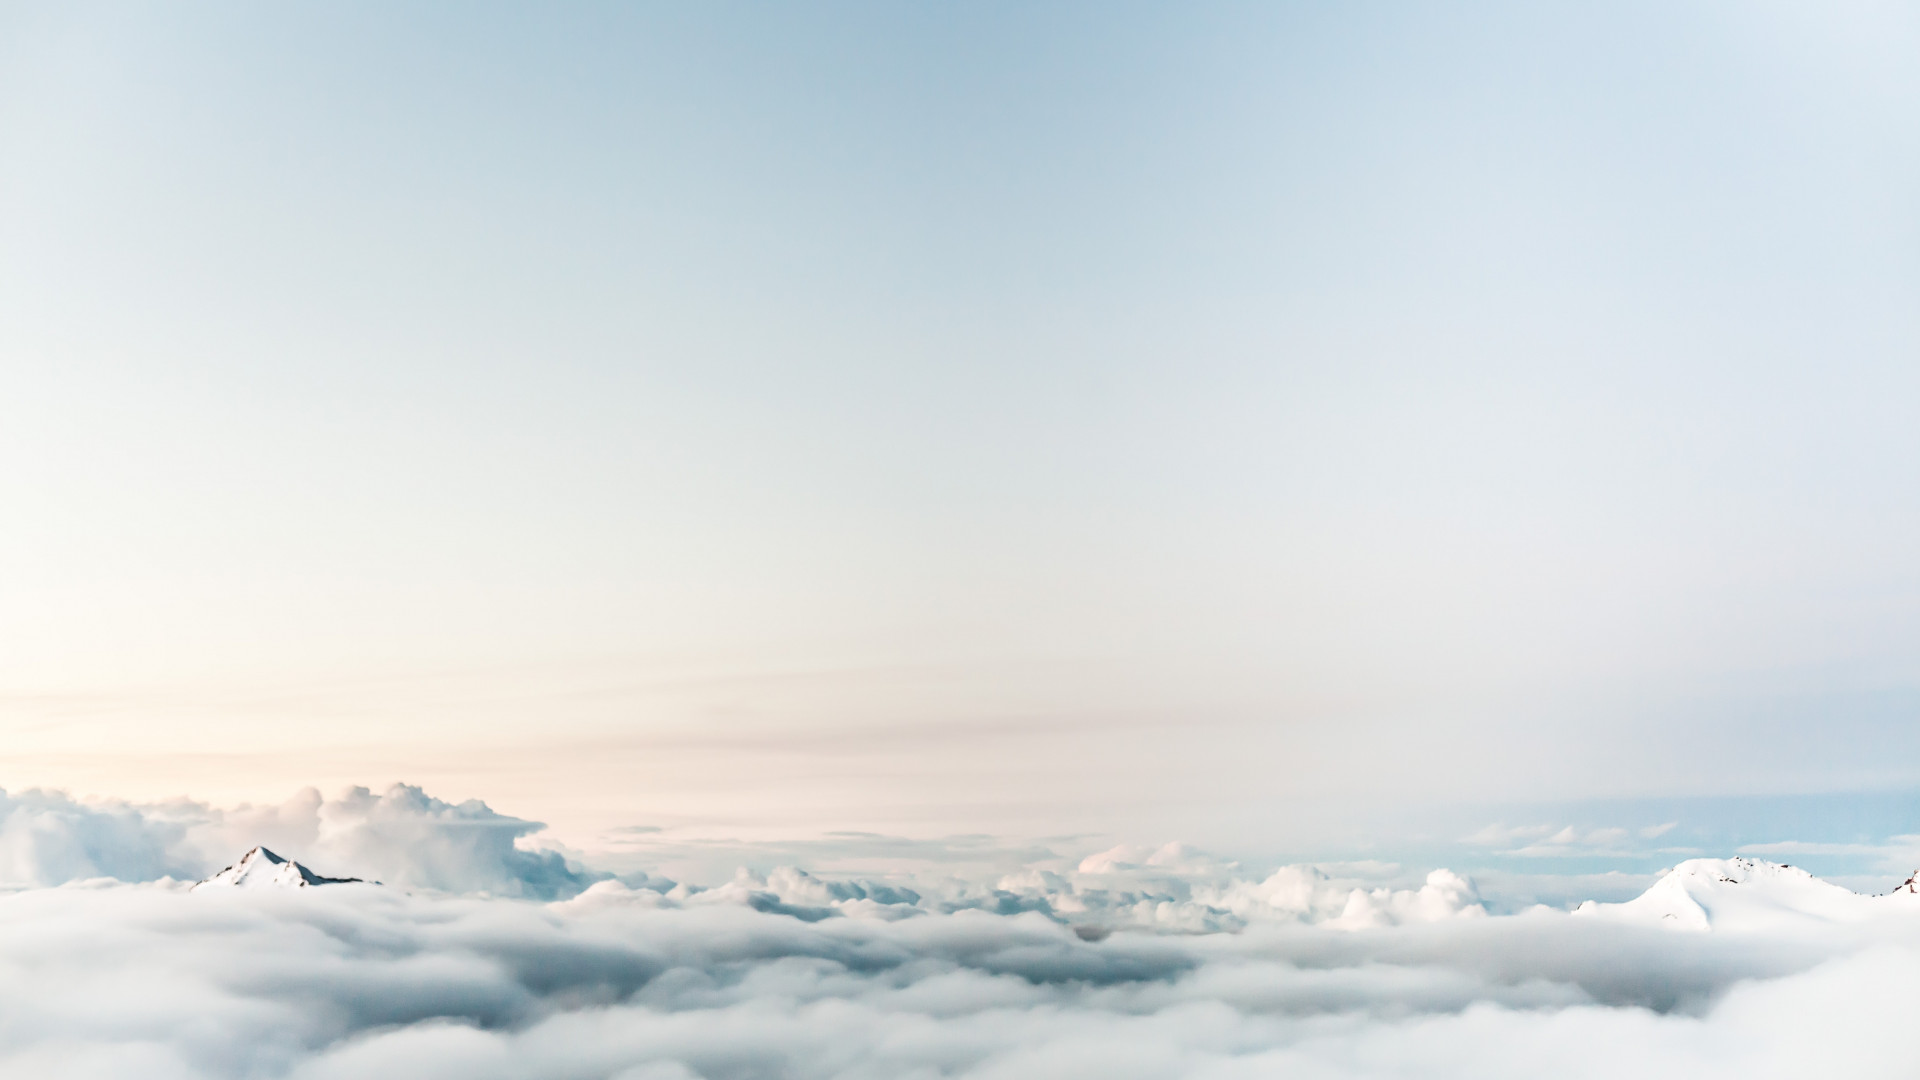 Floating on clouds | 1920x1080 wallpaper